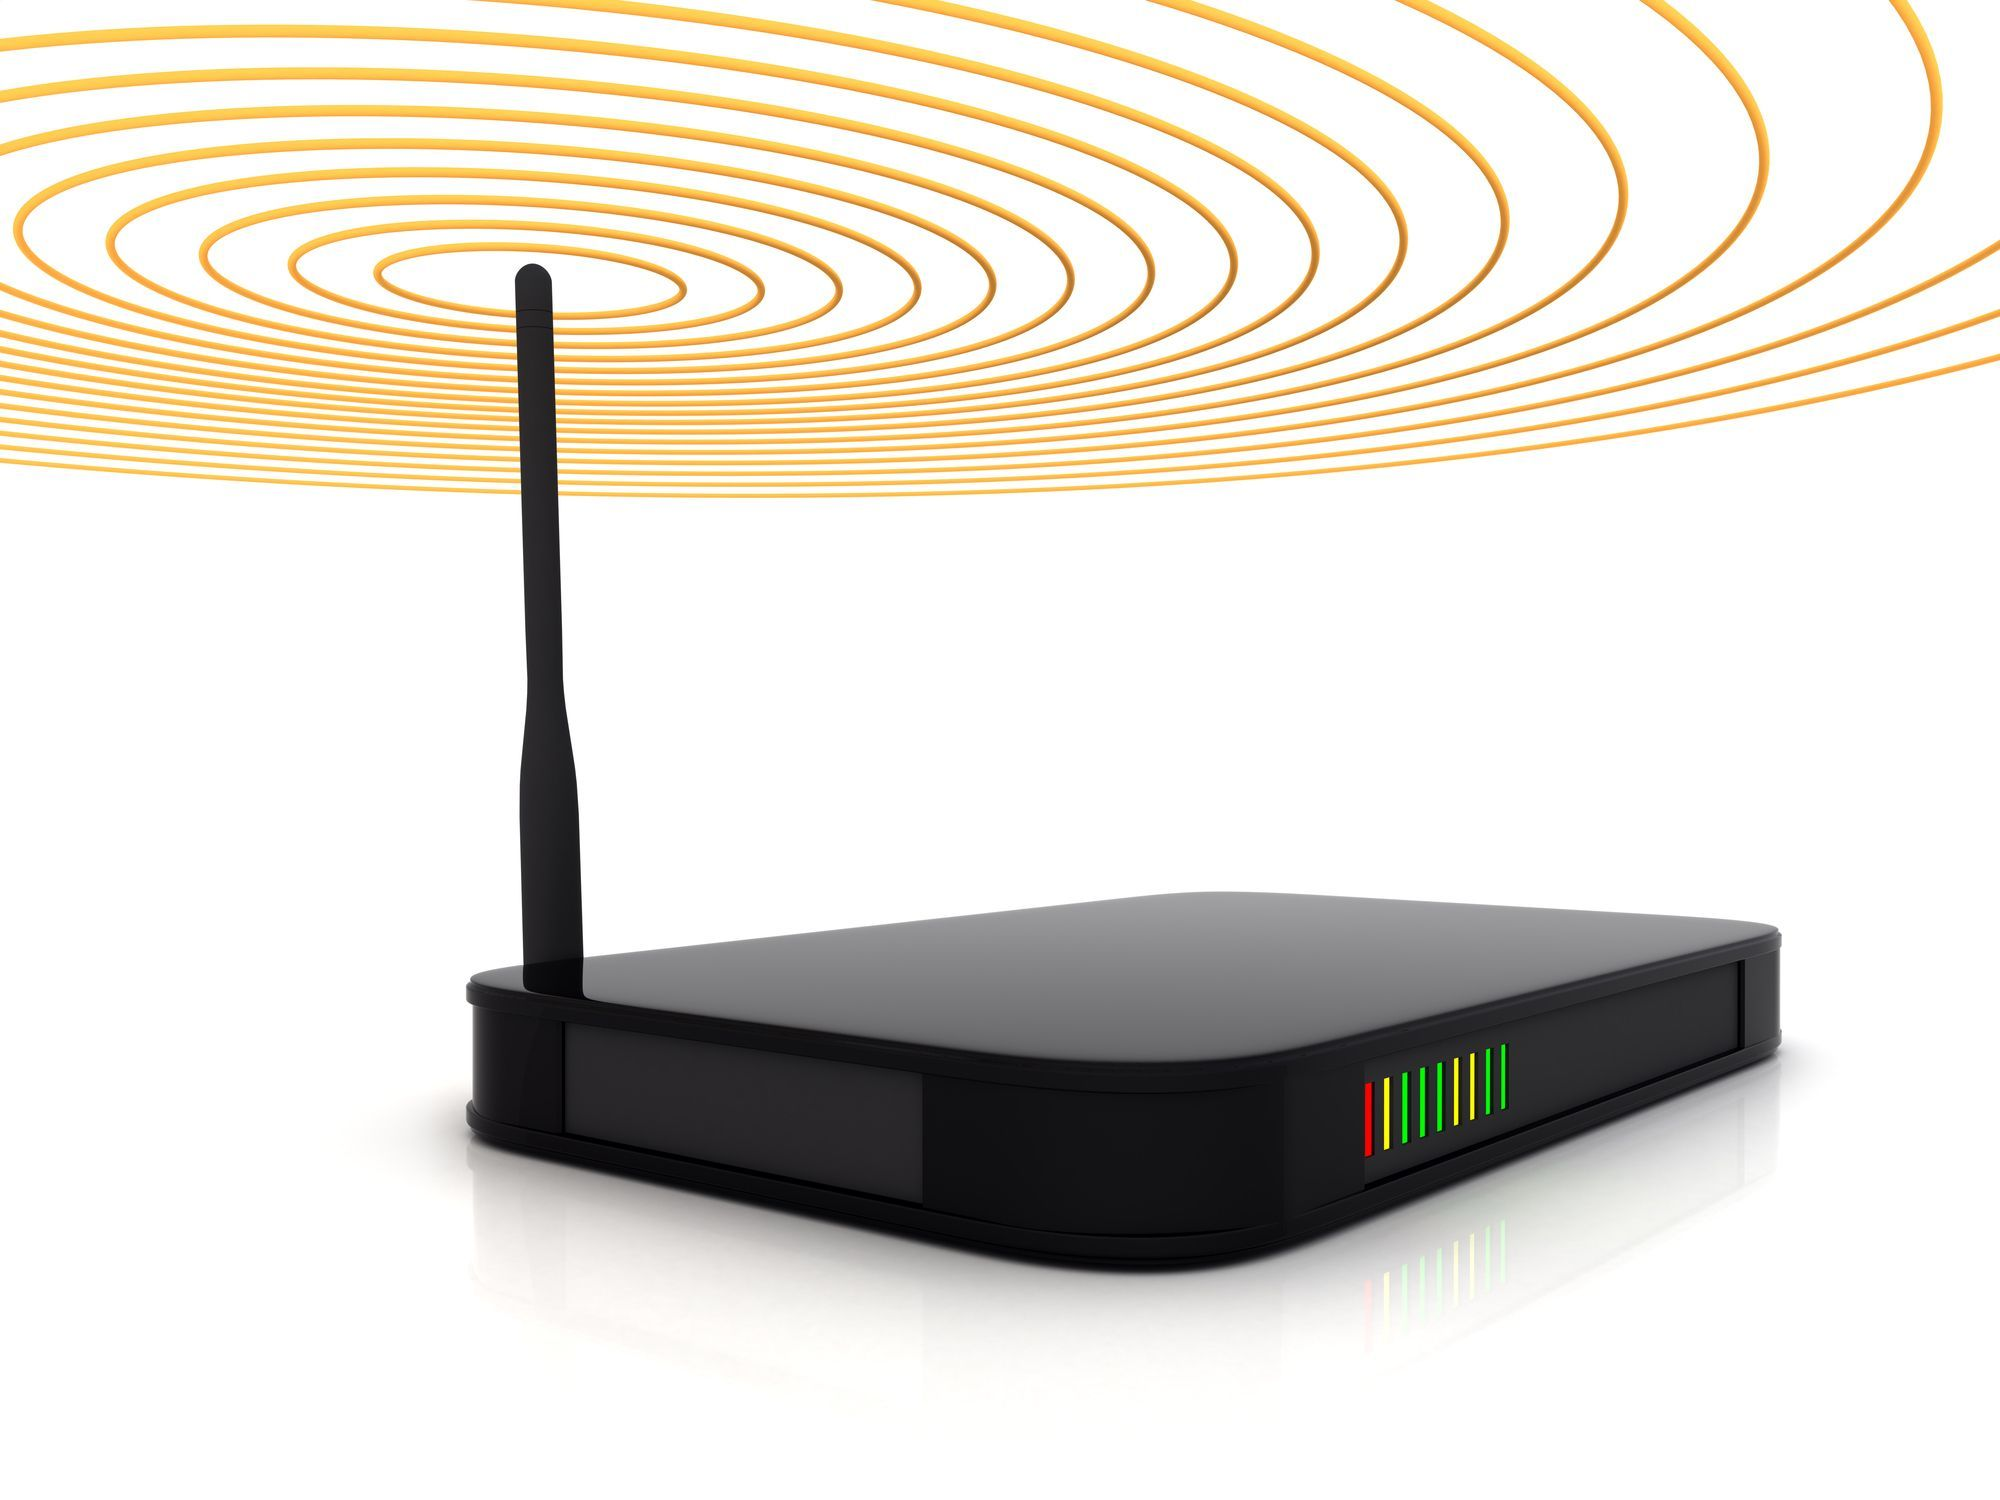 Purchasing Tips For Wireless Router For Your Home